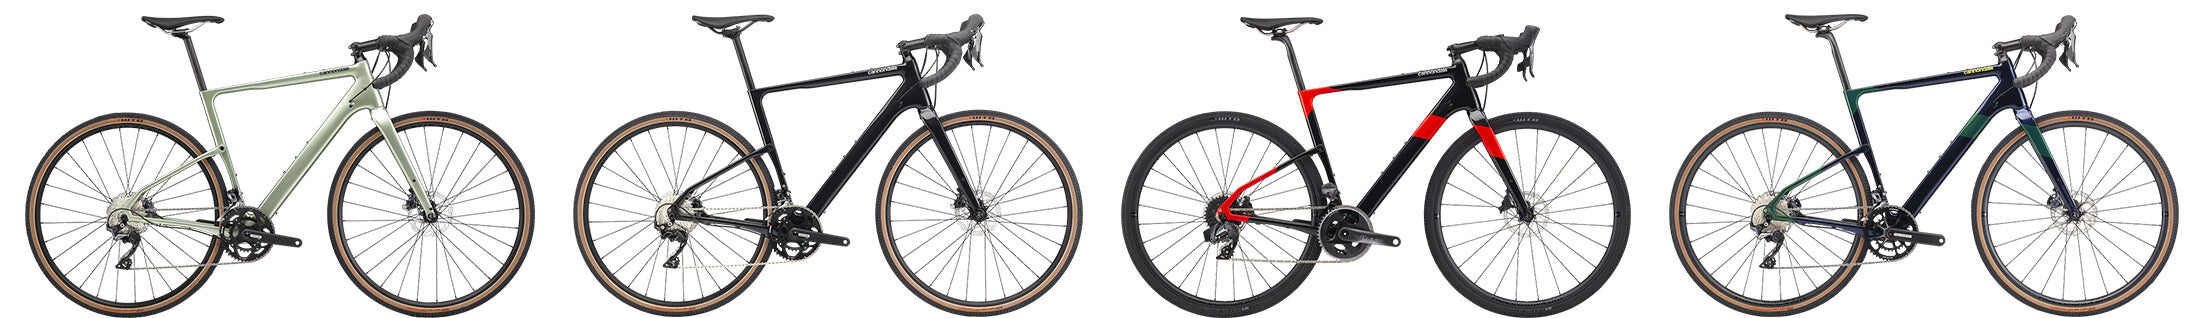 2020 Cannondale Topstone Carbon - Contender Bicycles